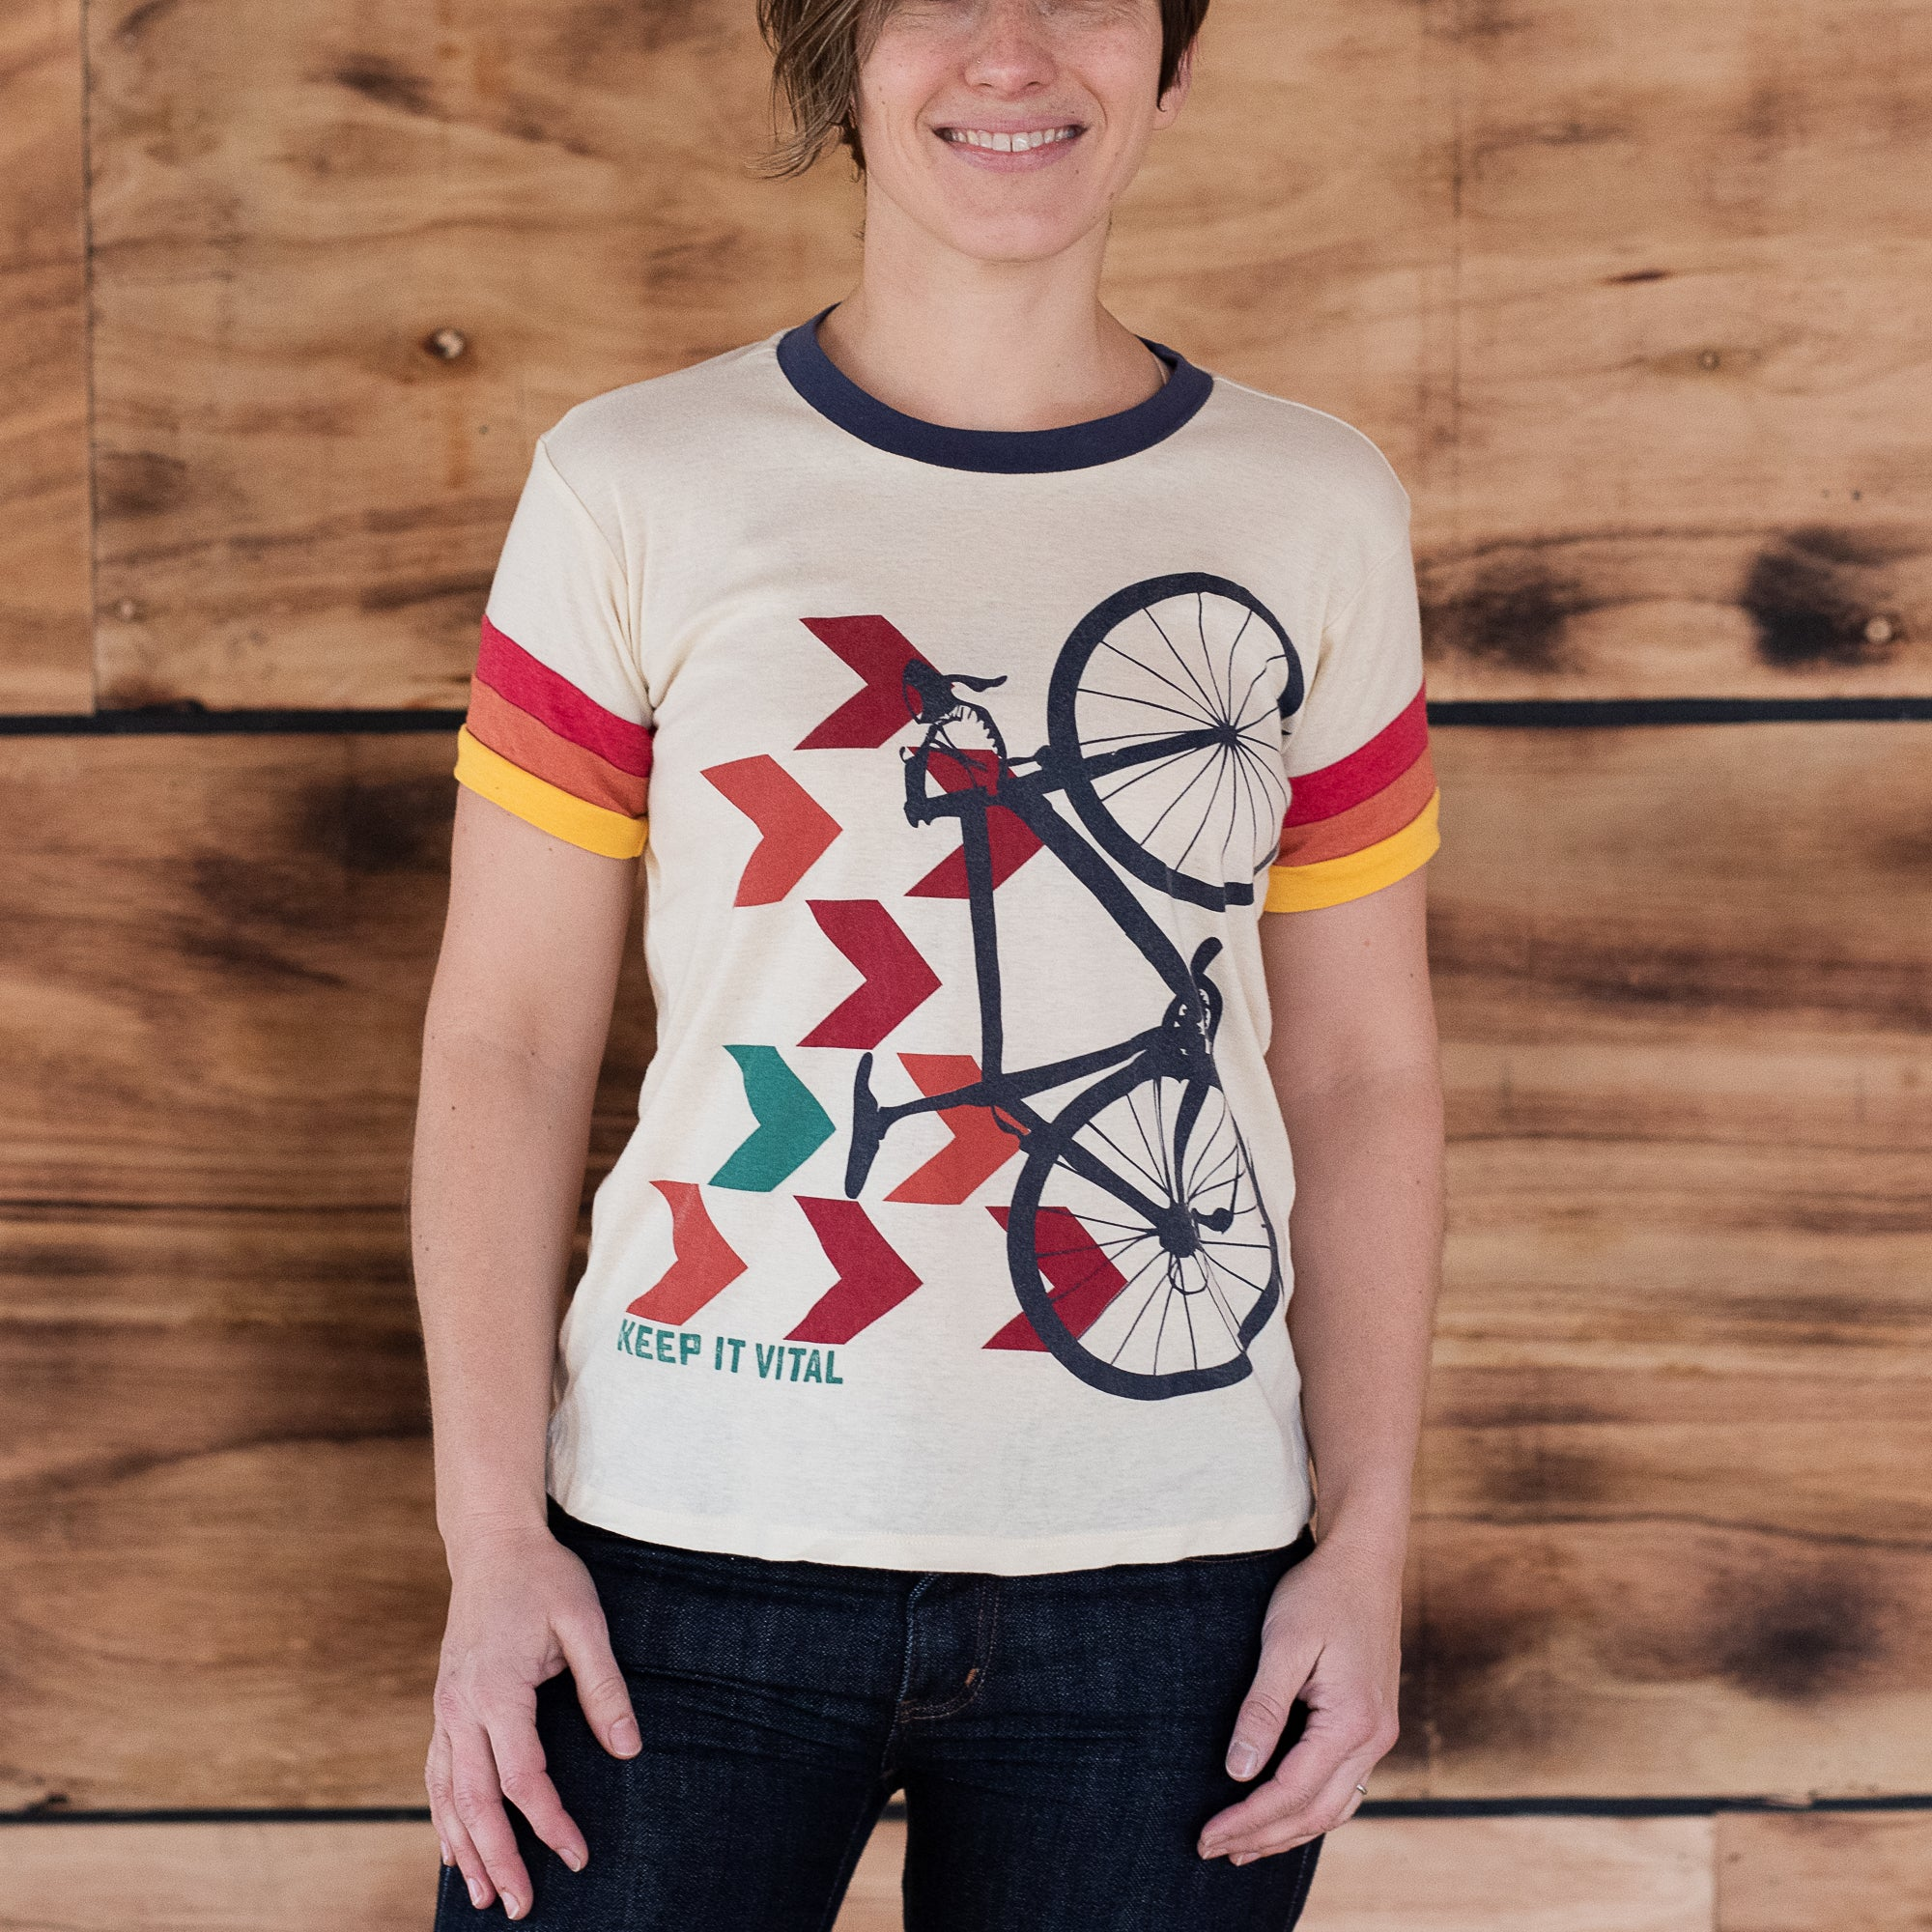 Multi-color chevron print on Camp Collection t-shirt